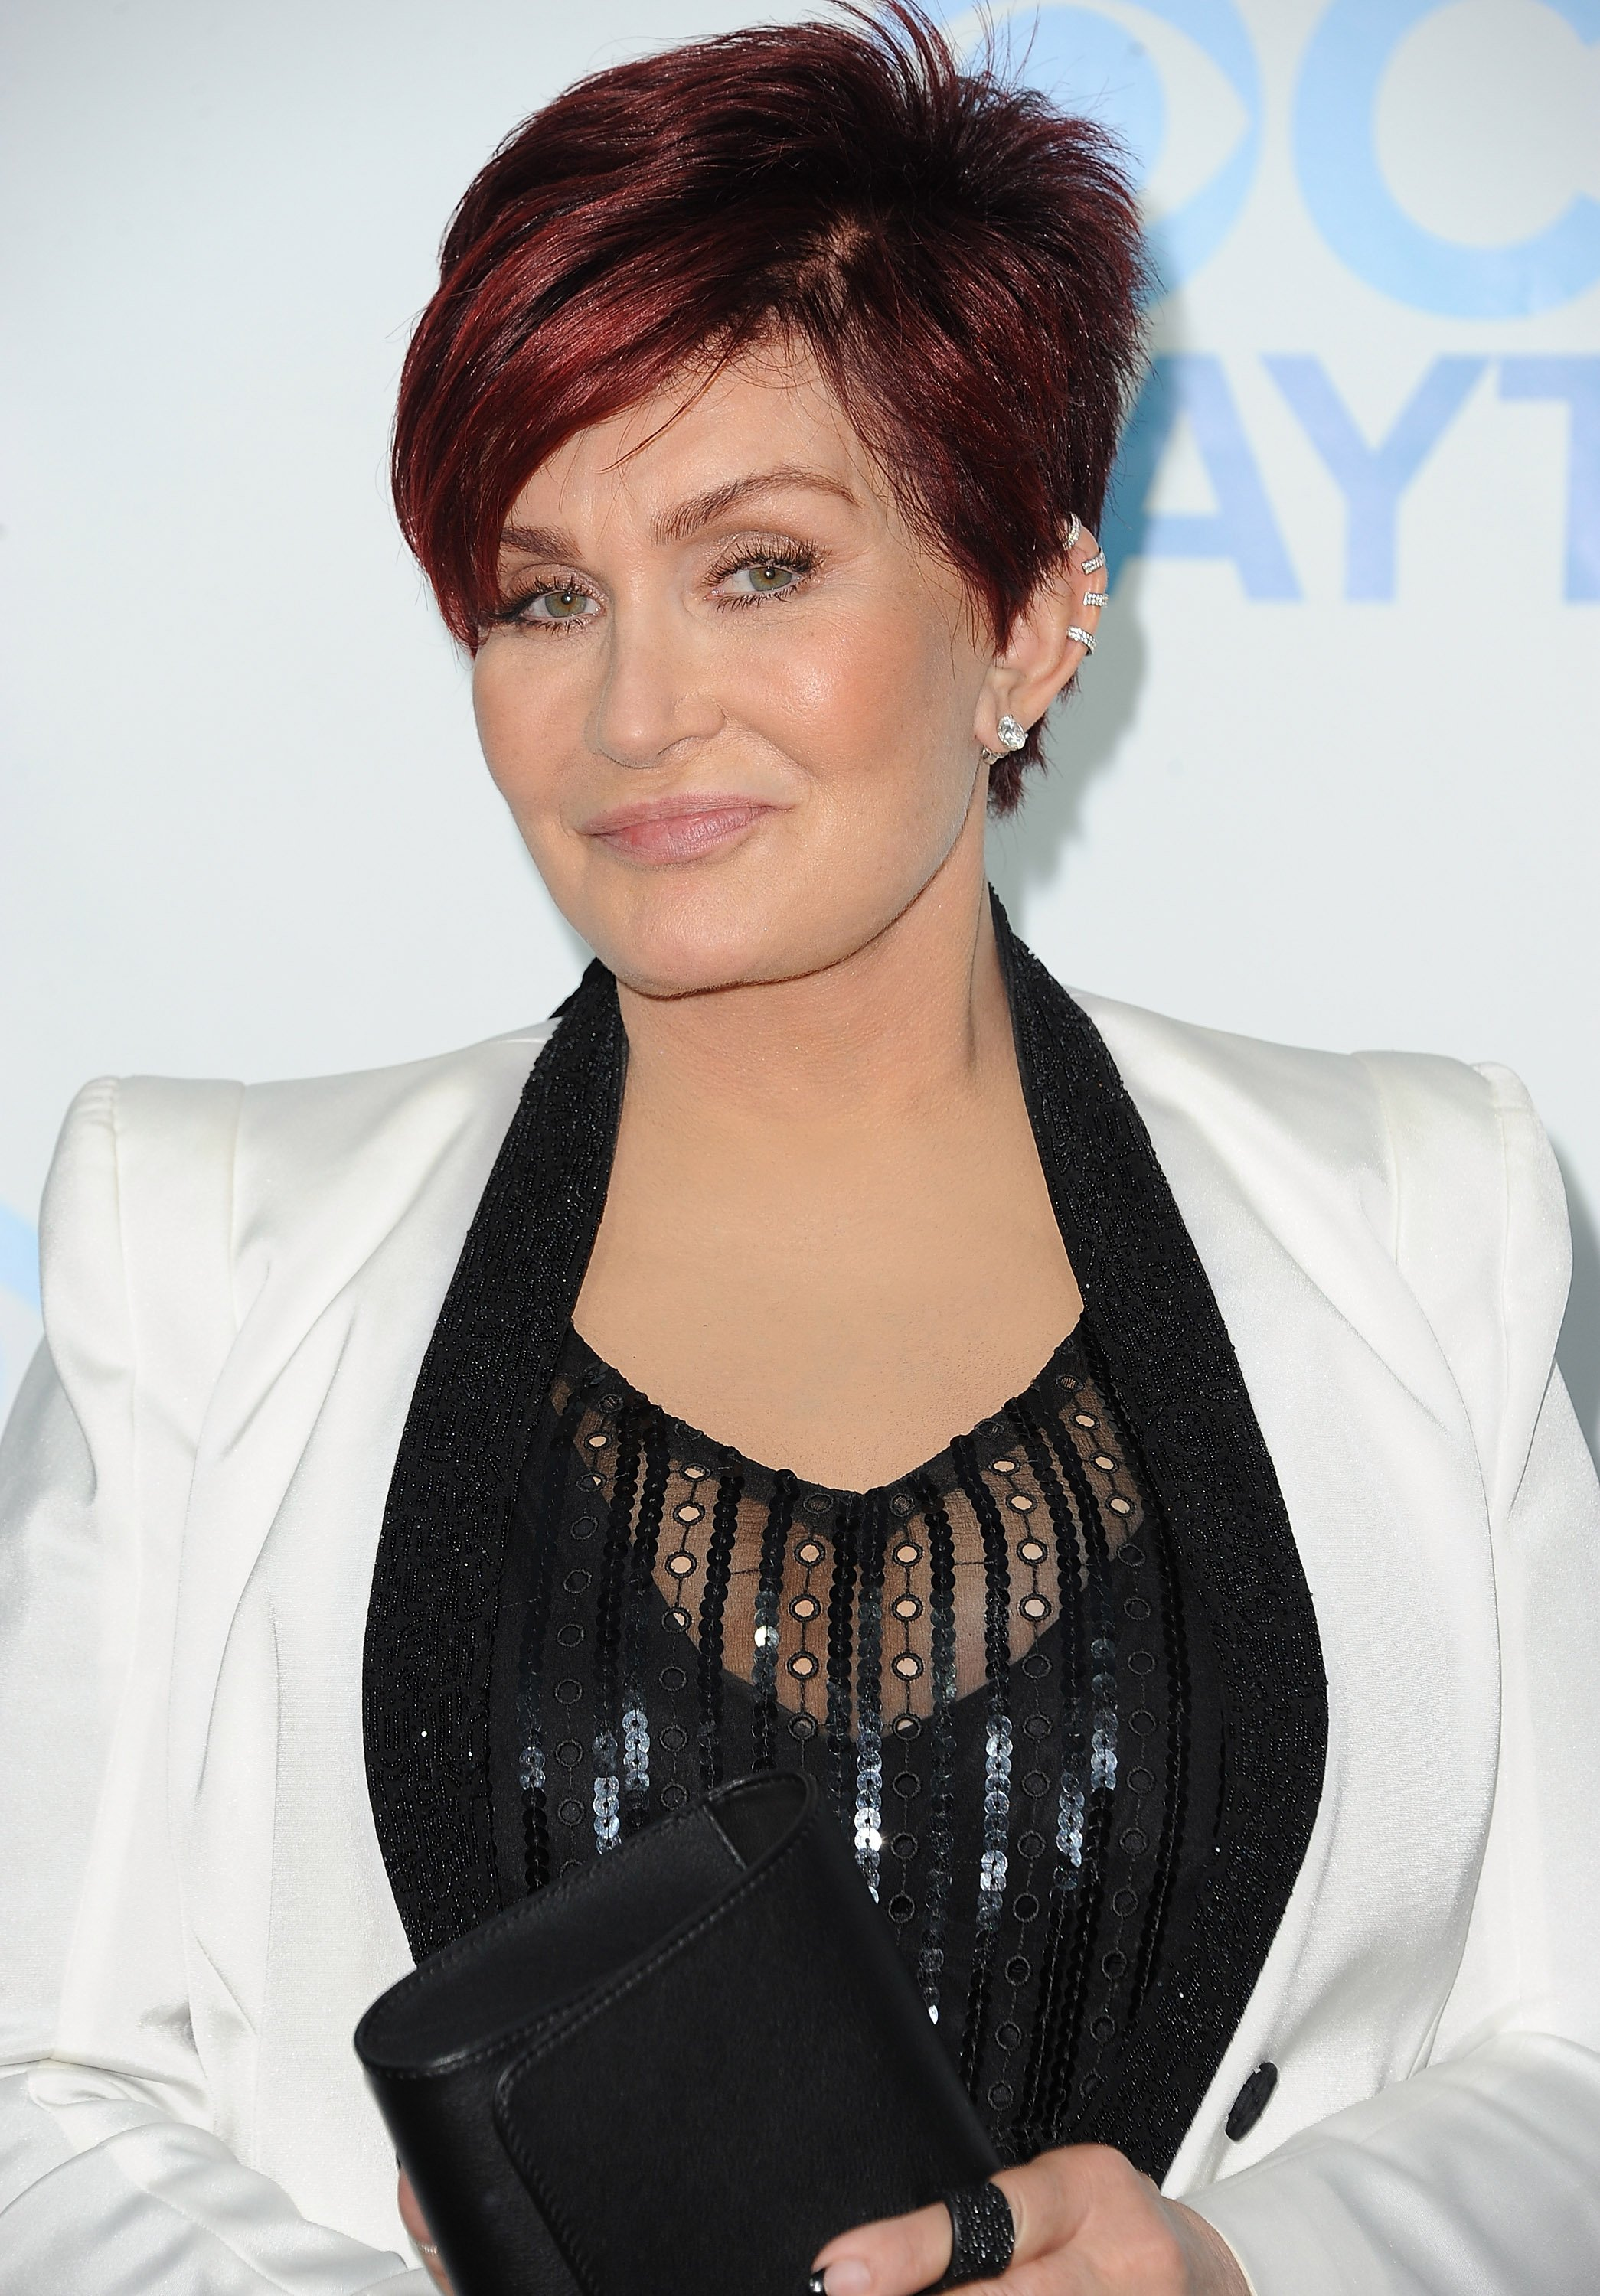 Sharon Osbourne pictured at the 41st Annual Daytime Emmy Awards CBS, 2014, Beverly Hills. | Photo: Getty Images